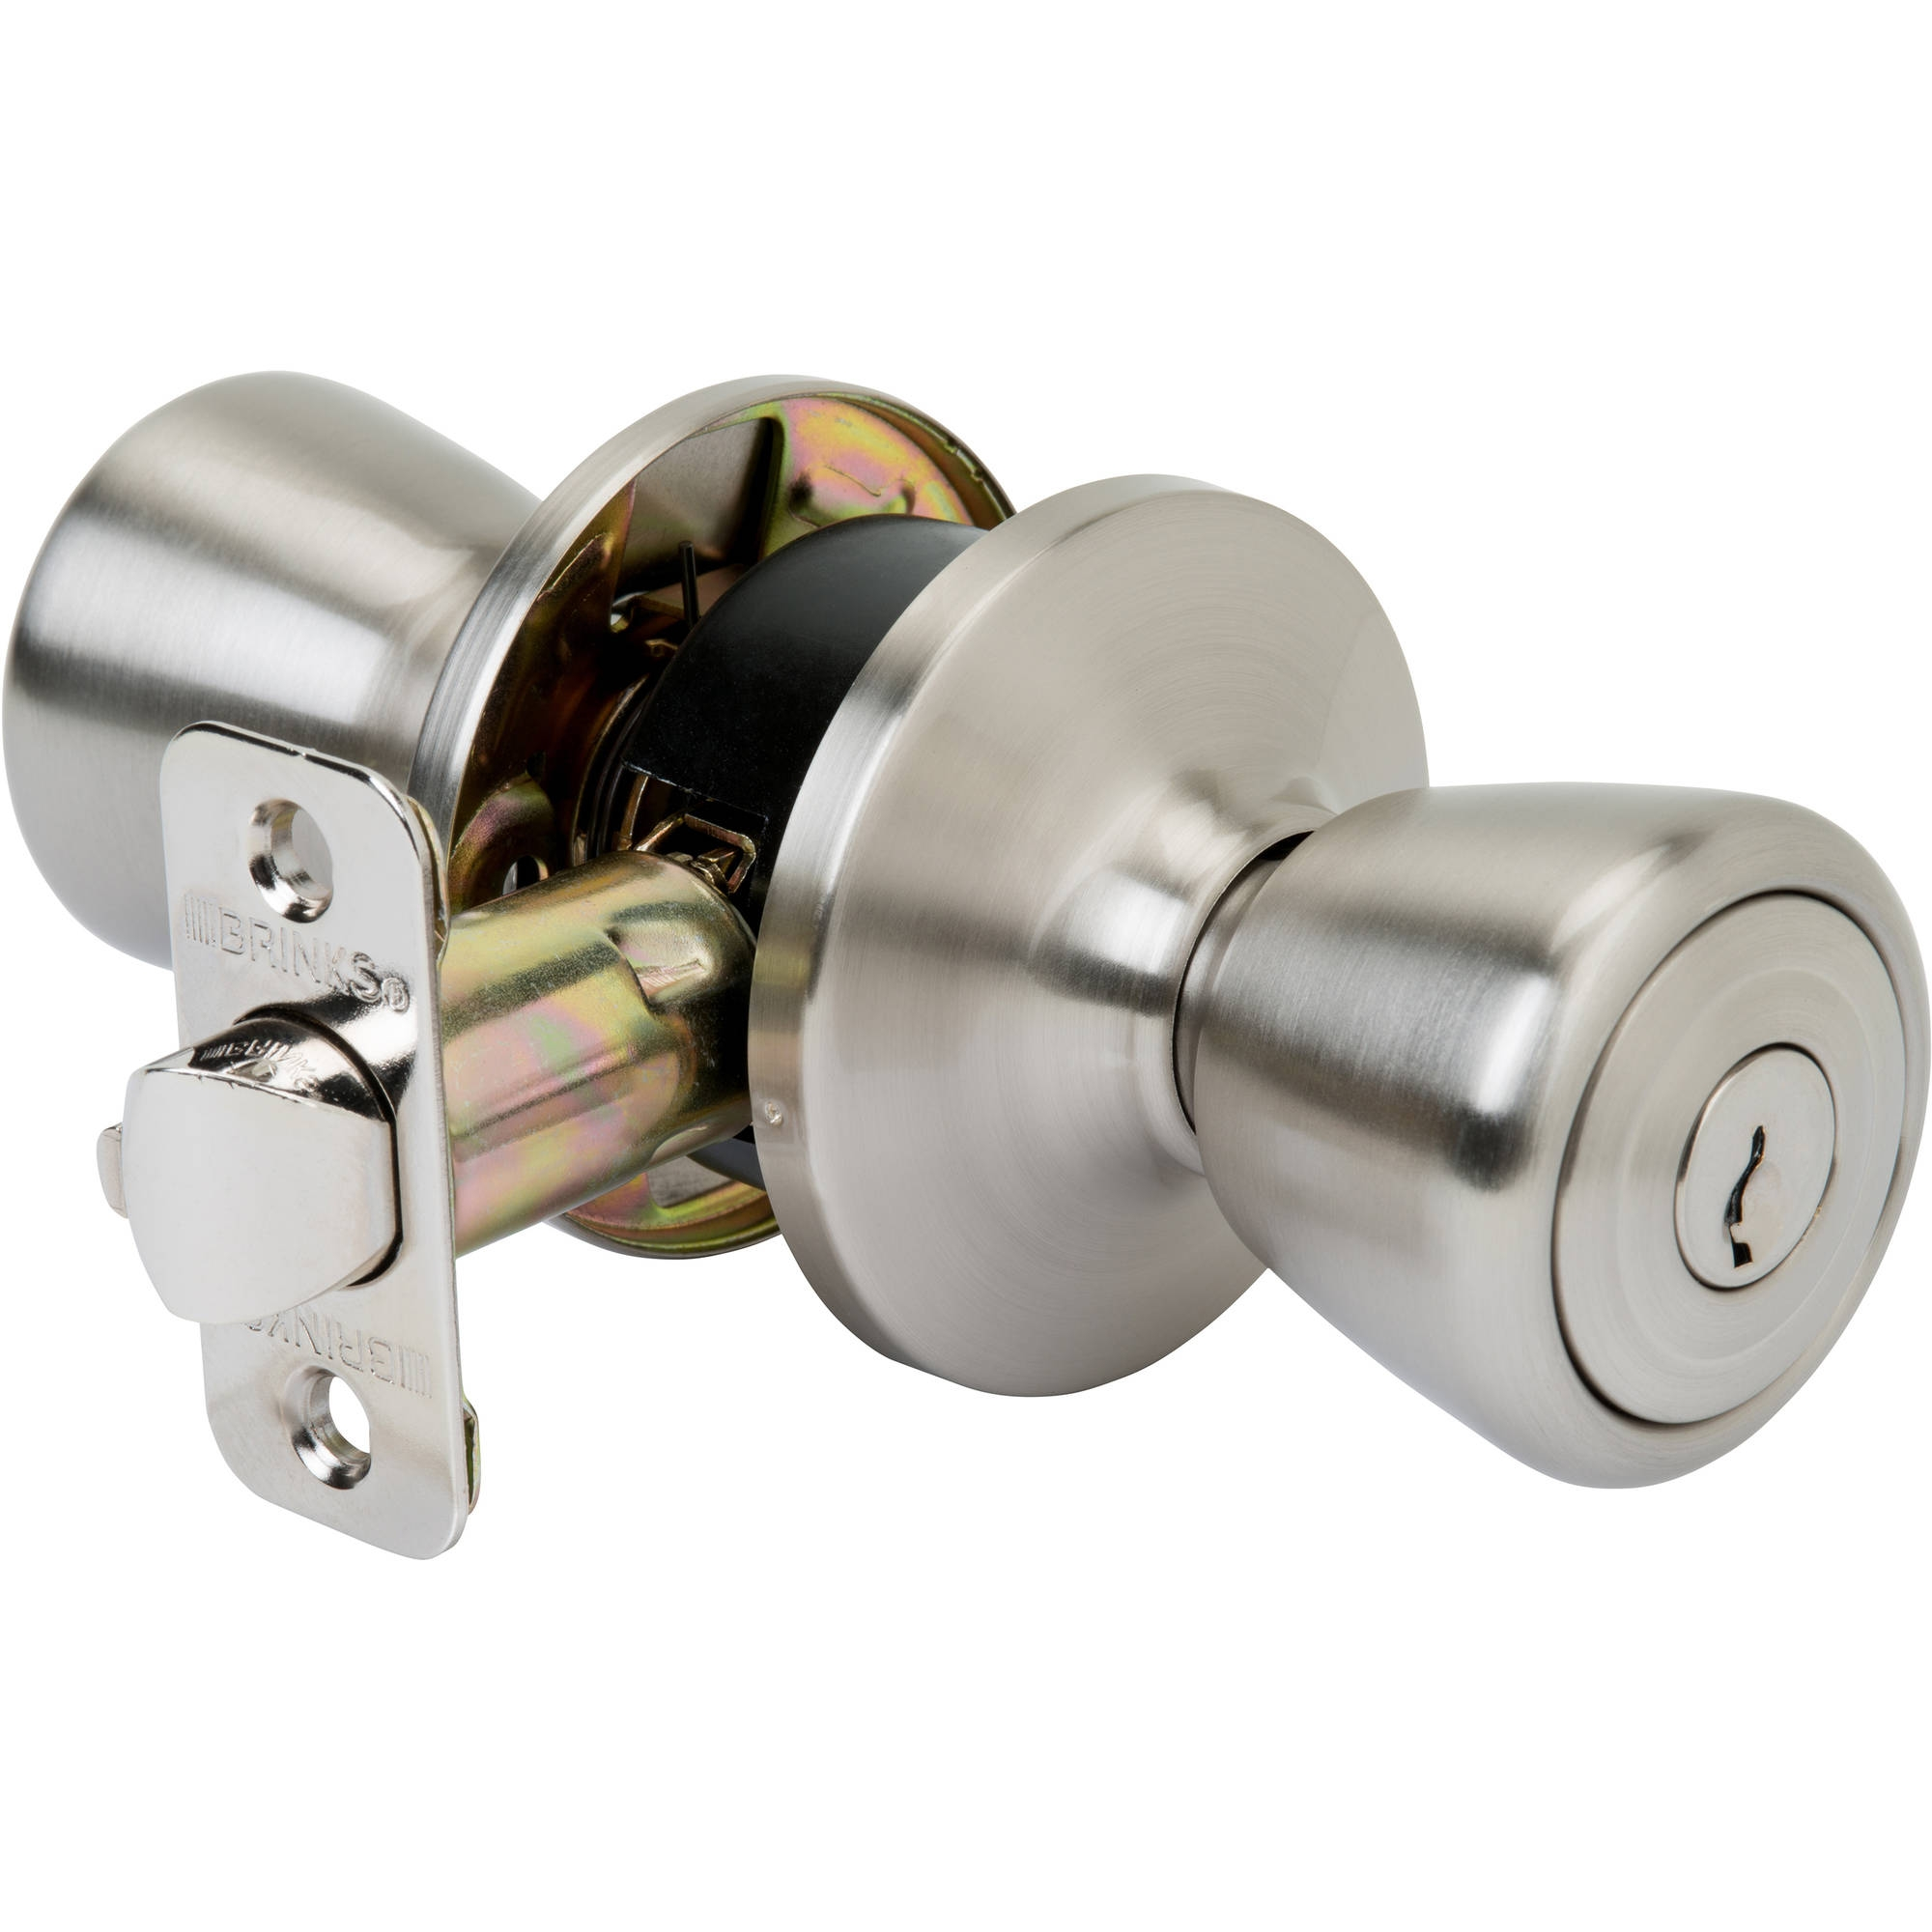 Permalink to Brinks Door Knobs Satin Nickel